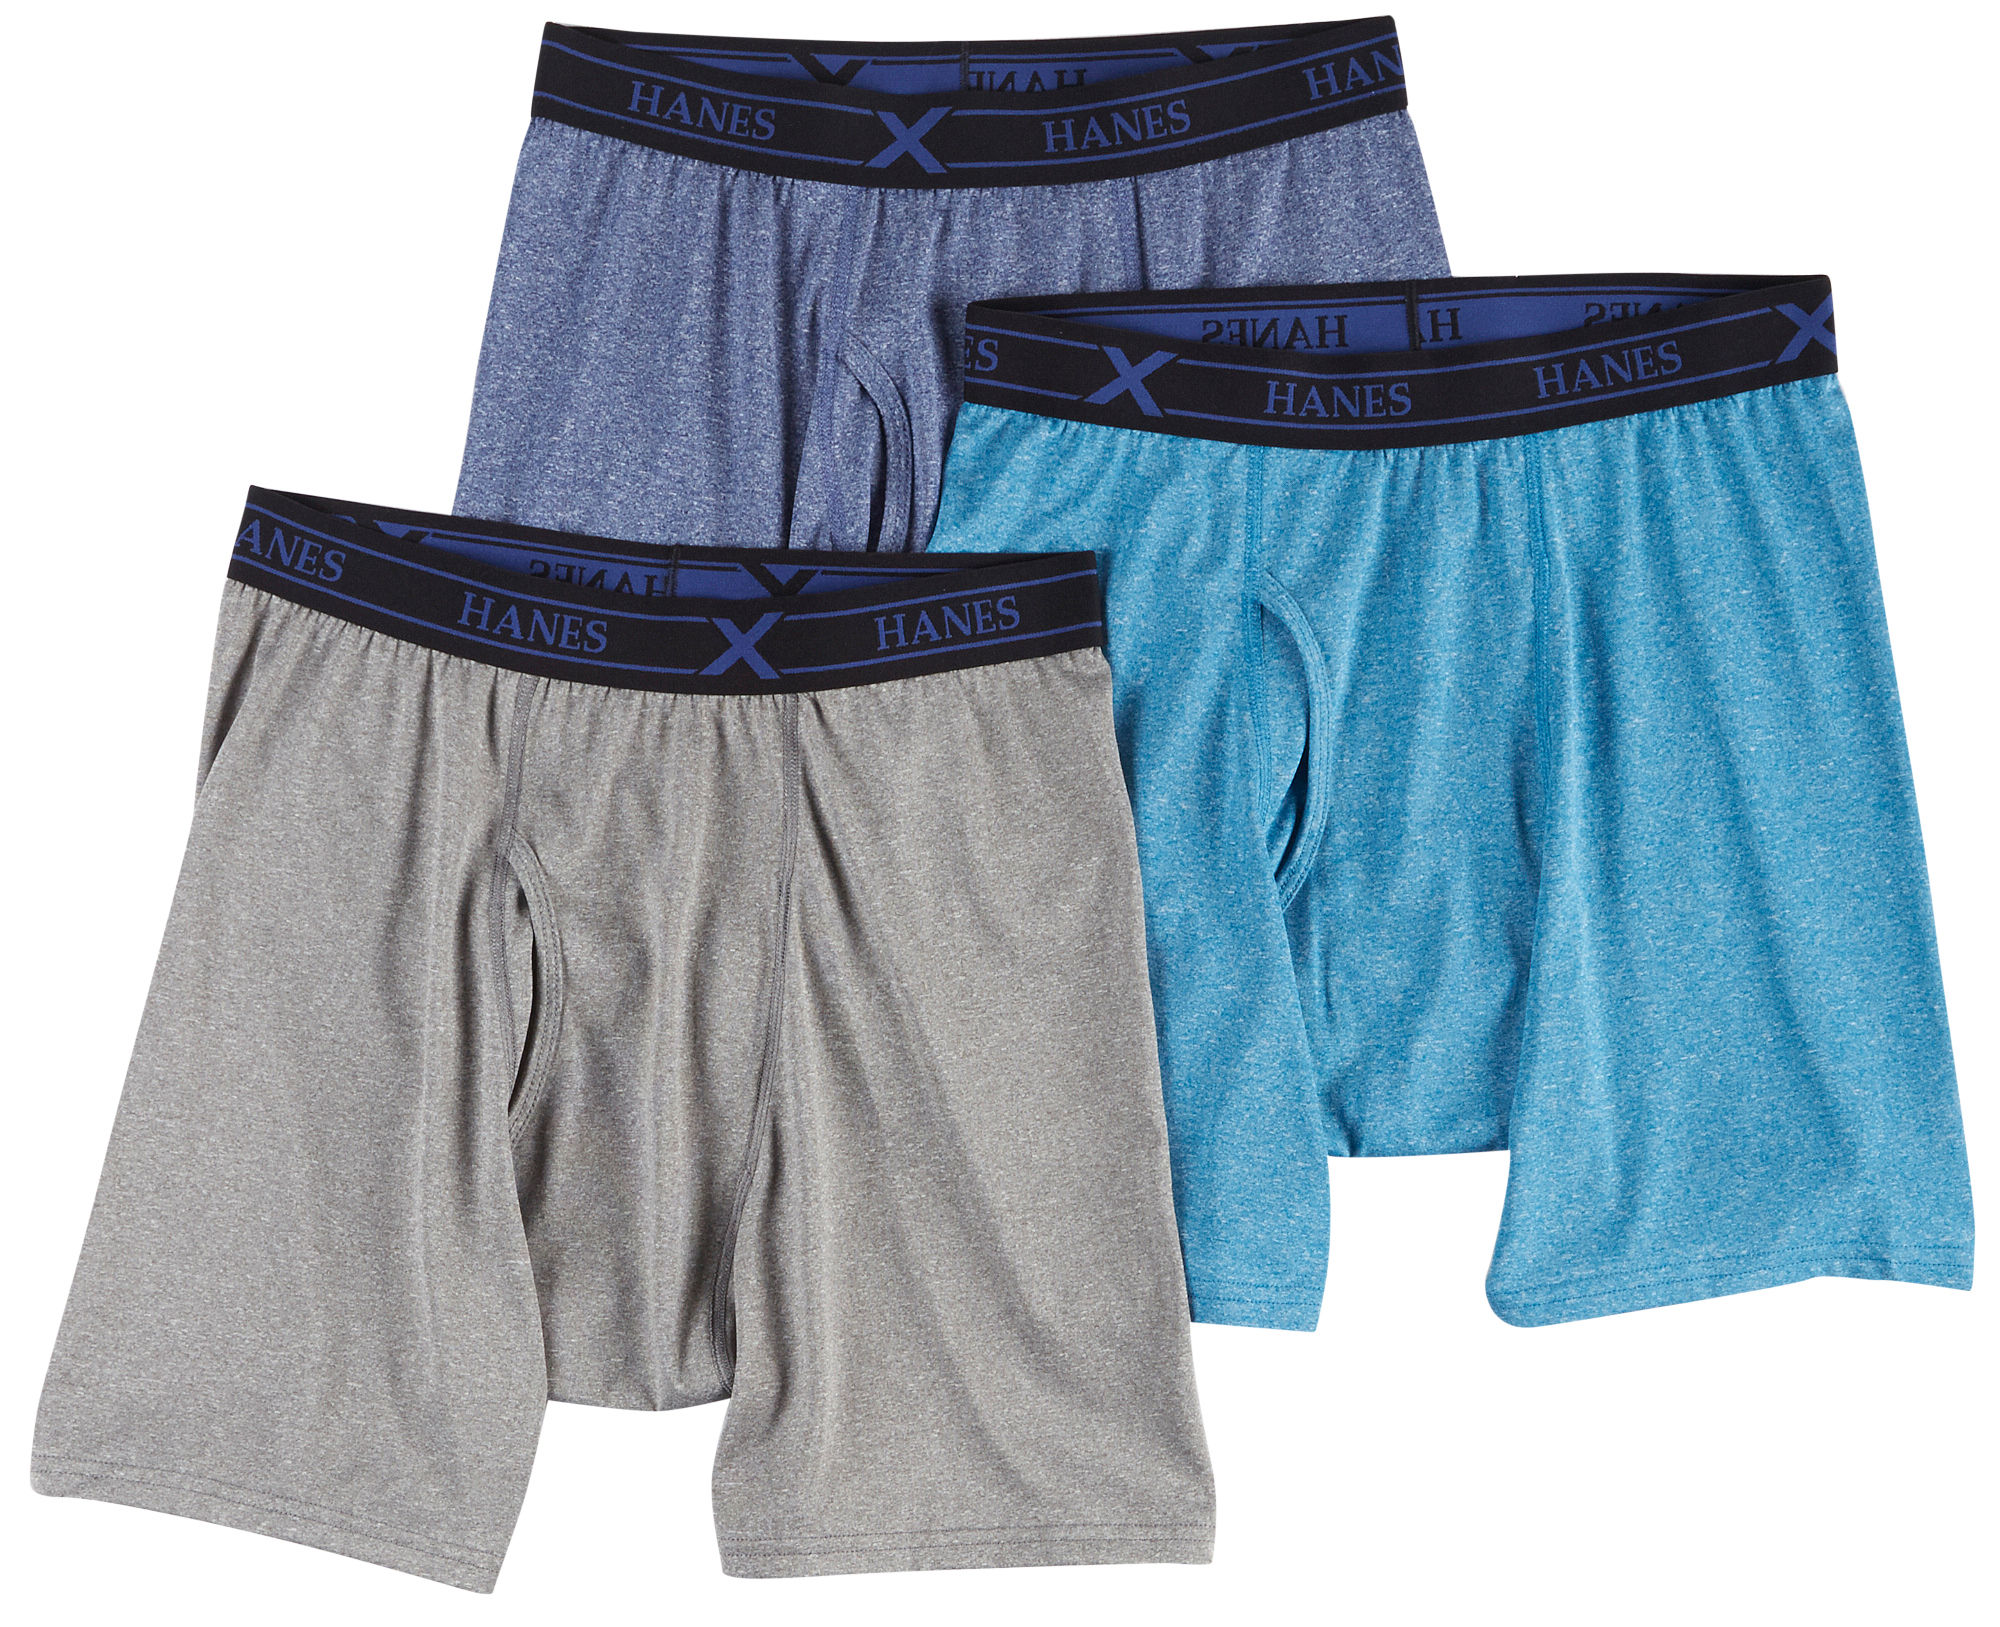 Hanes Mens 3 PK Ultimate x Temp Boxer Briefs | eBay